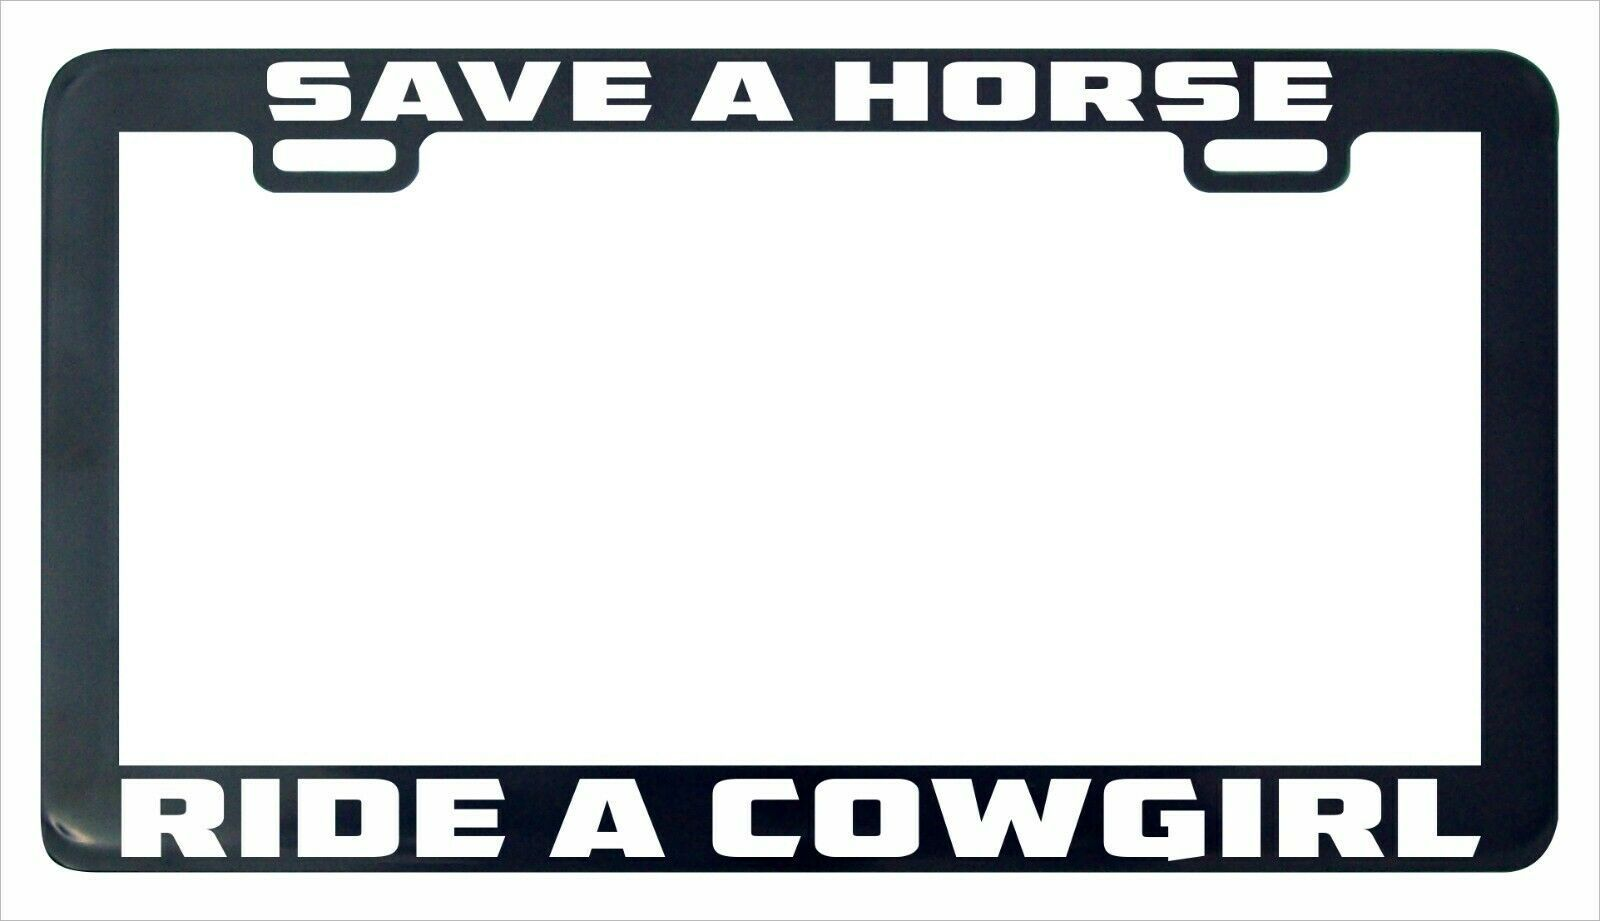 Primary image for Save a horse ride a cowgirl funny humor license plate frame